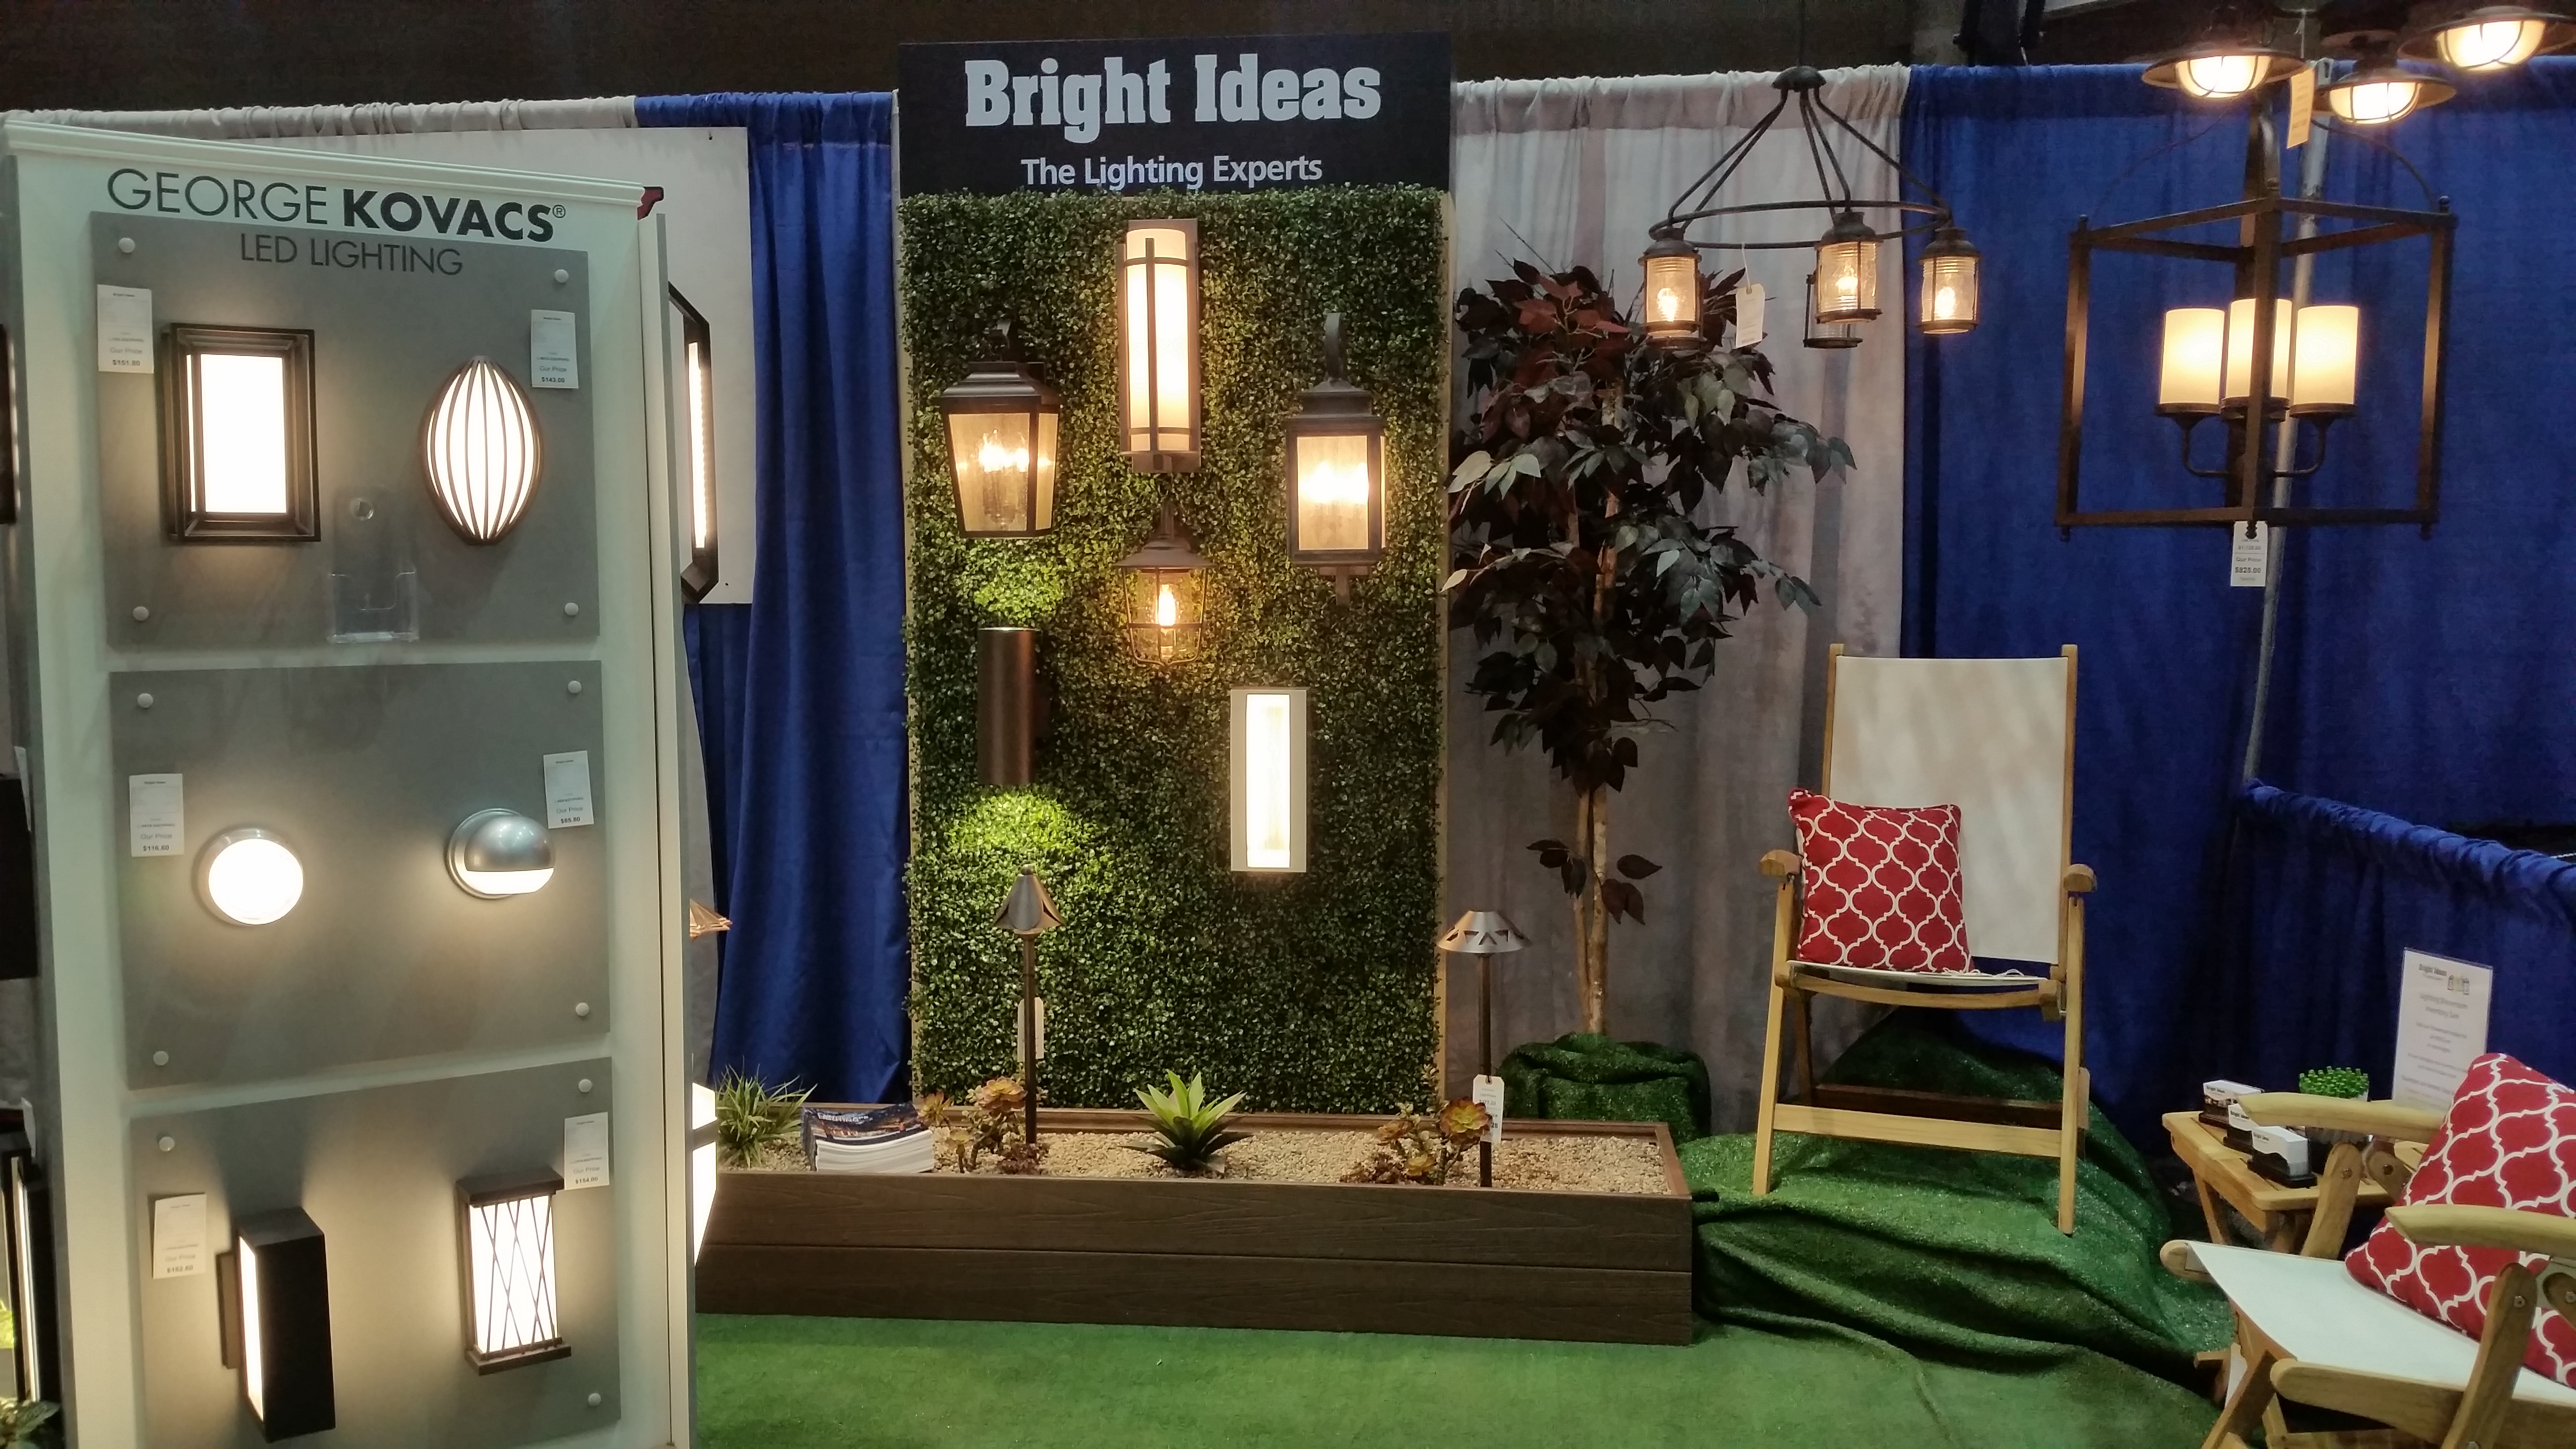 Bright Idead Lighting & Decor Showroom of the Year